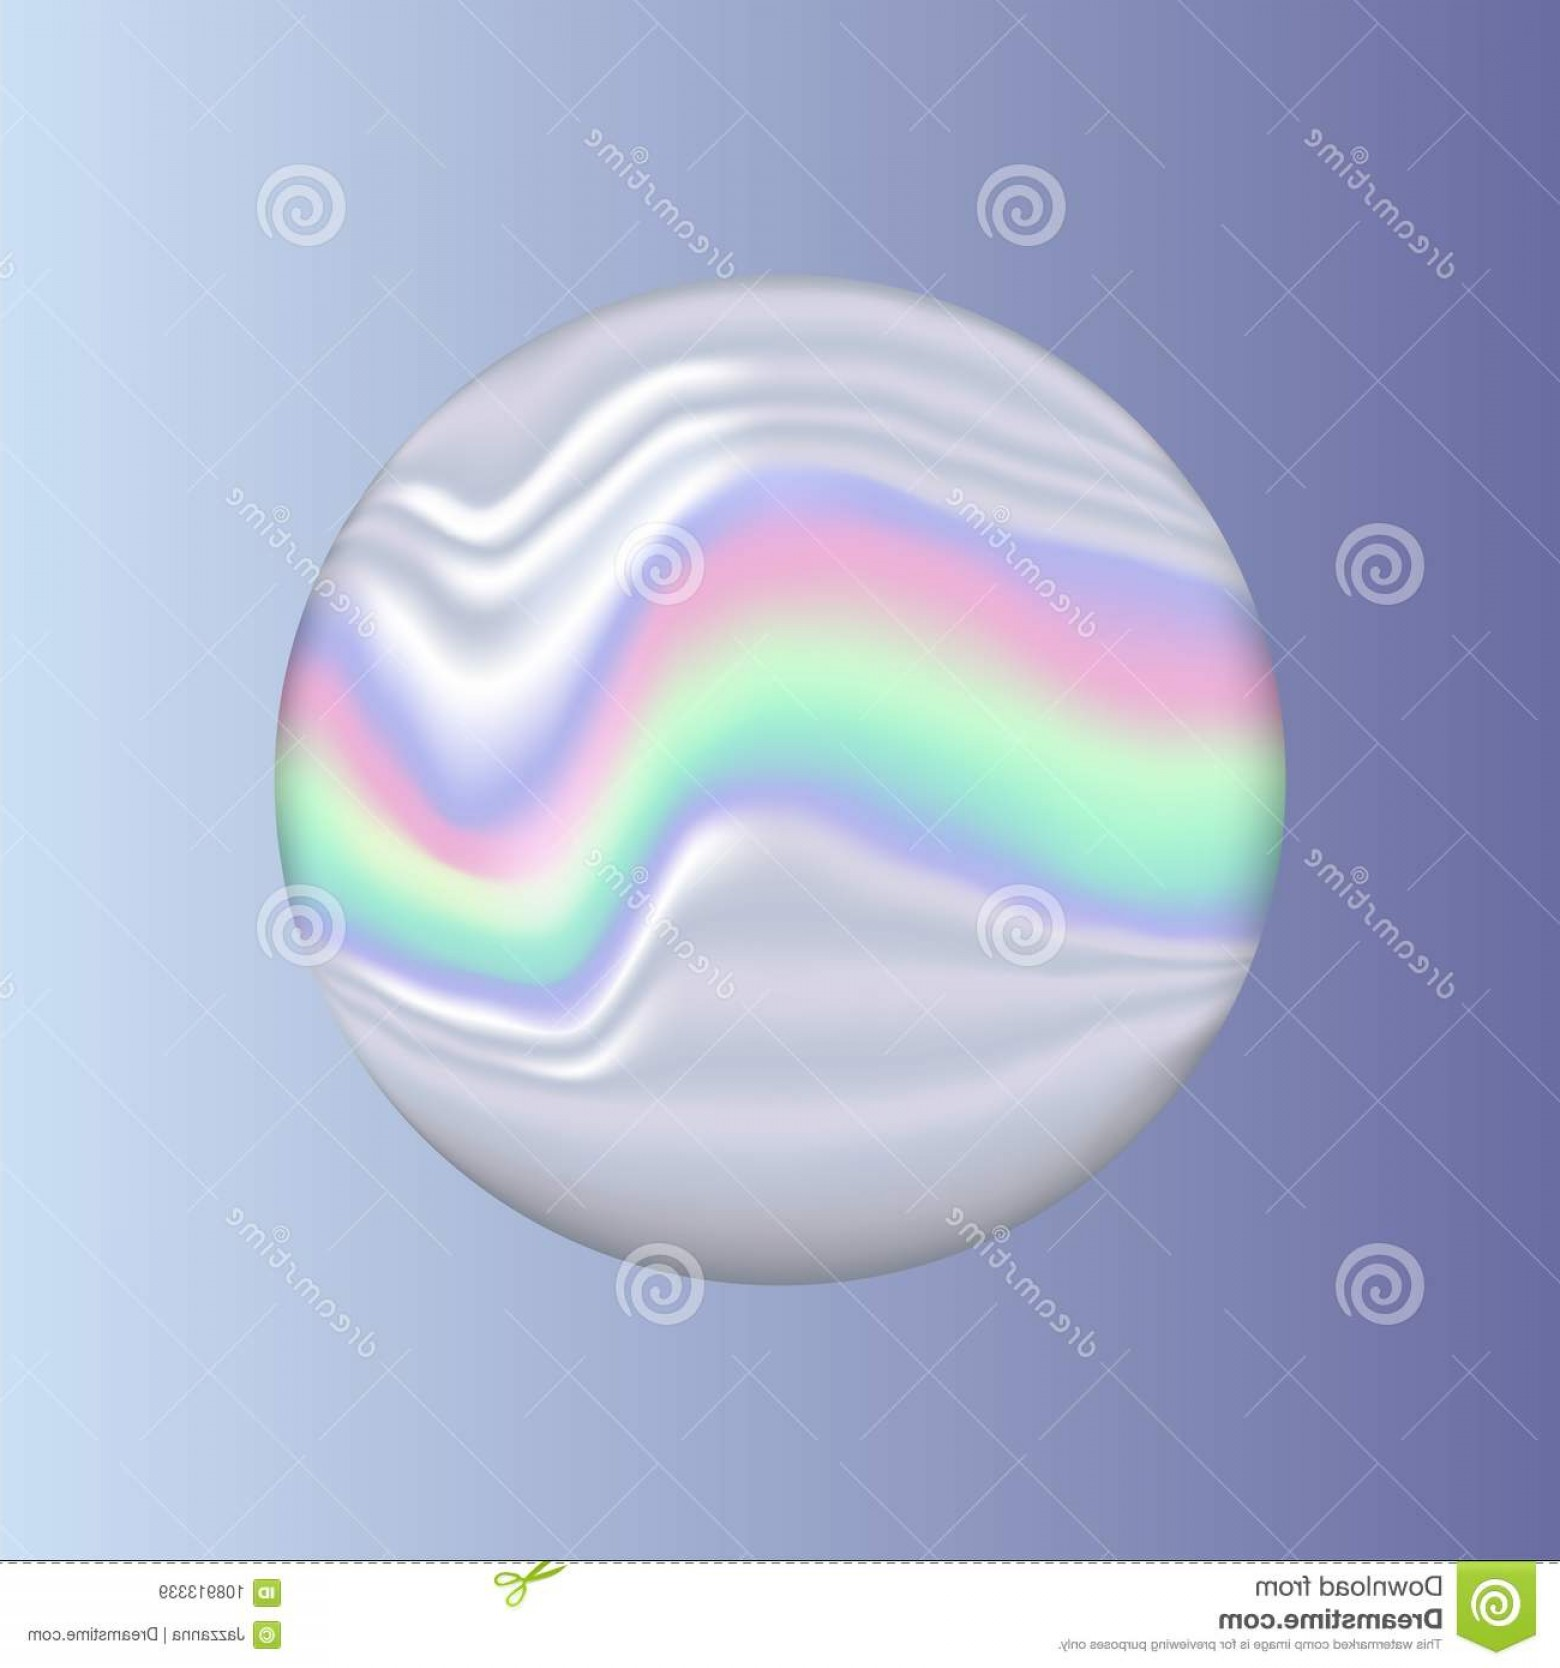 Vector Sphere Marble: Holographic Marble Sphere Object Vector Holographic Marble Sphere Object Image